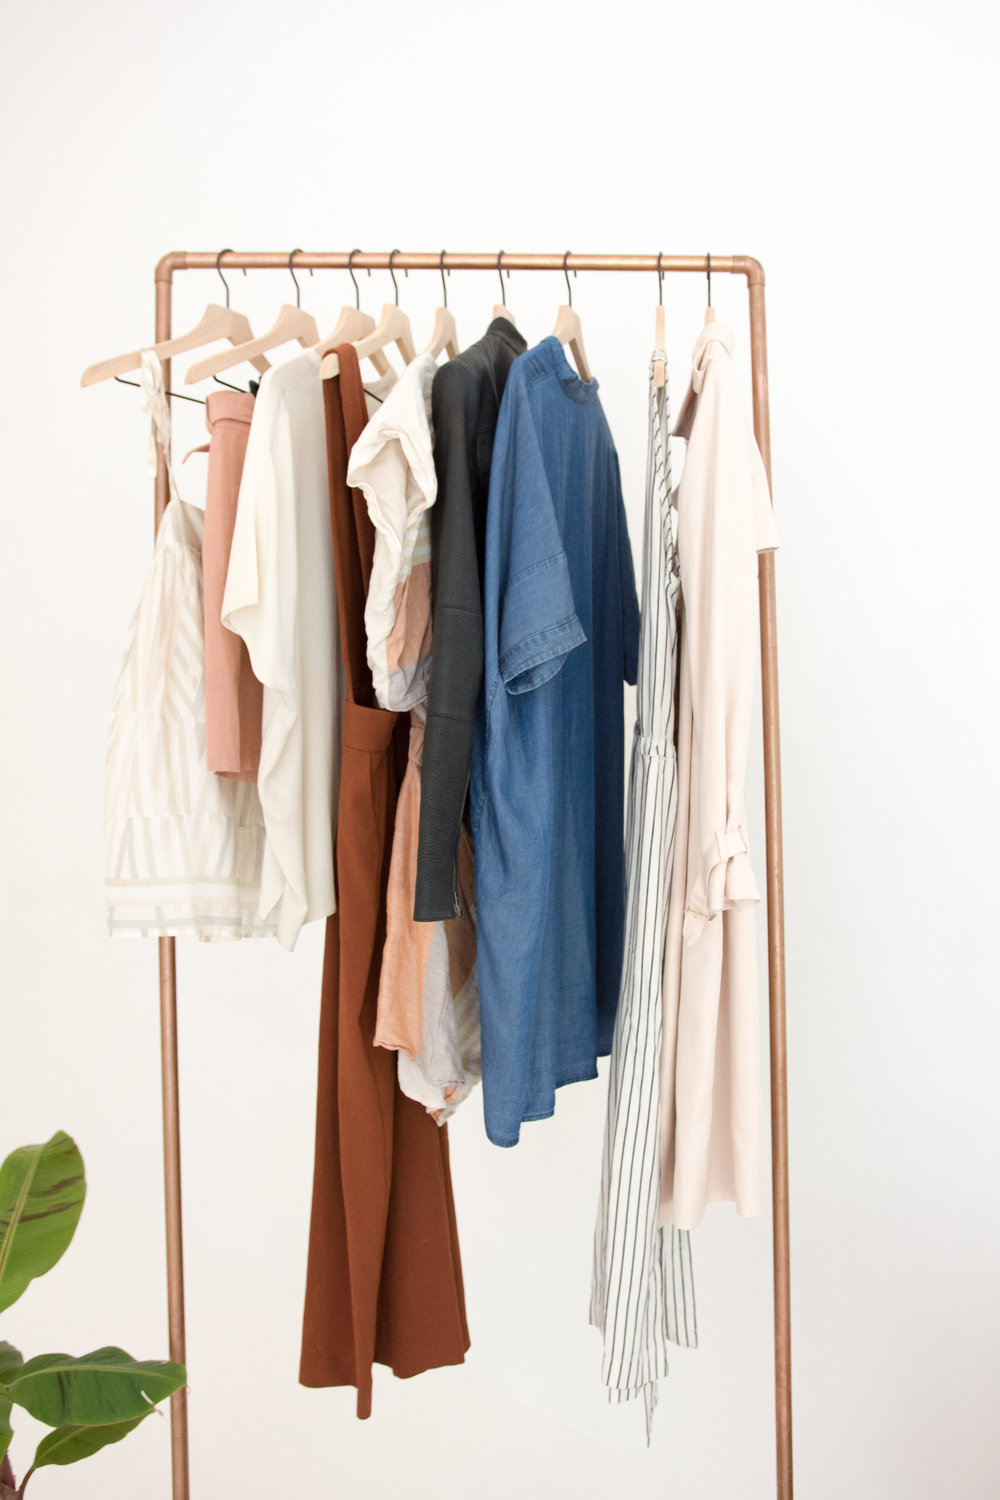 Clothing on copper rack